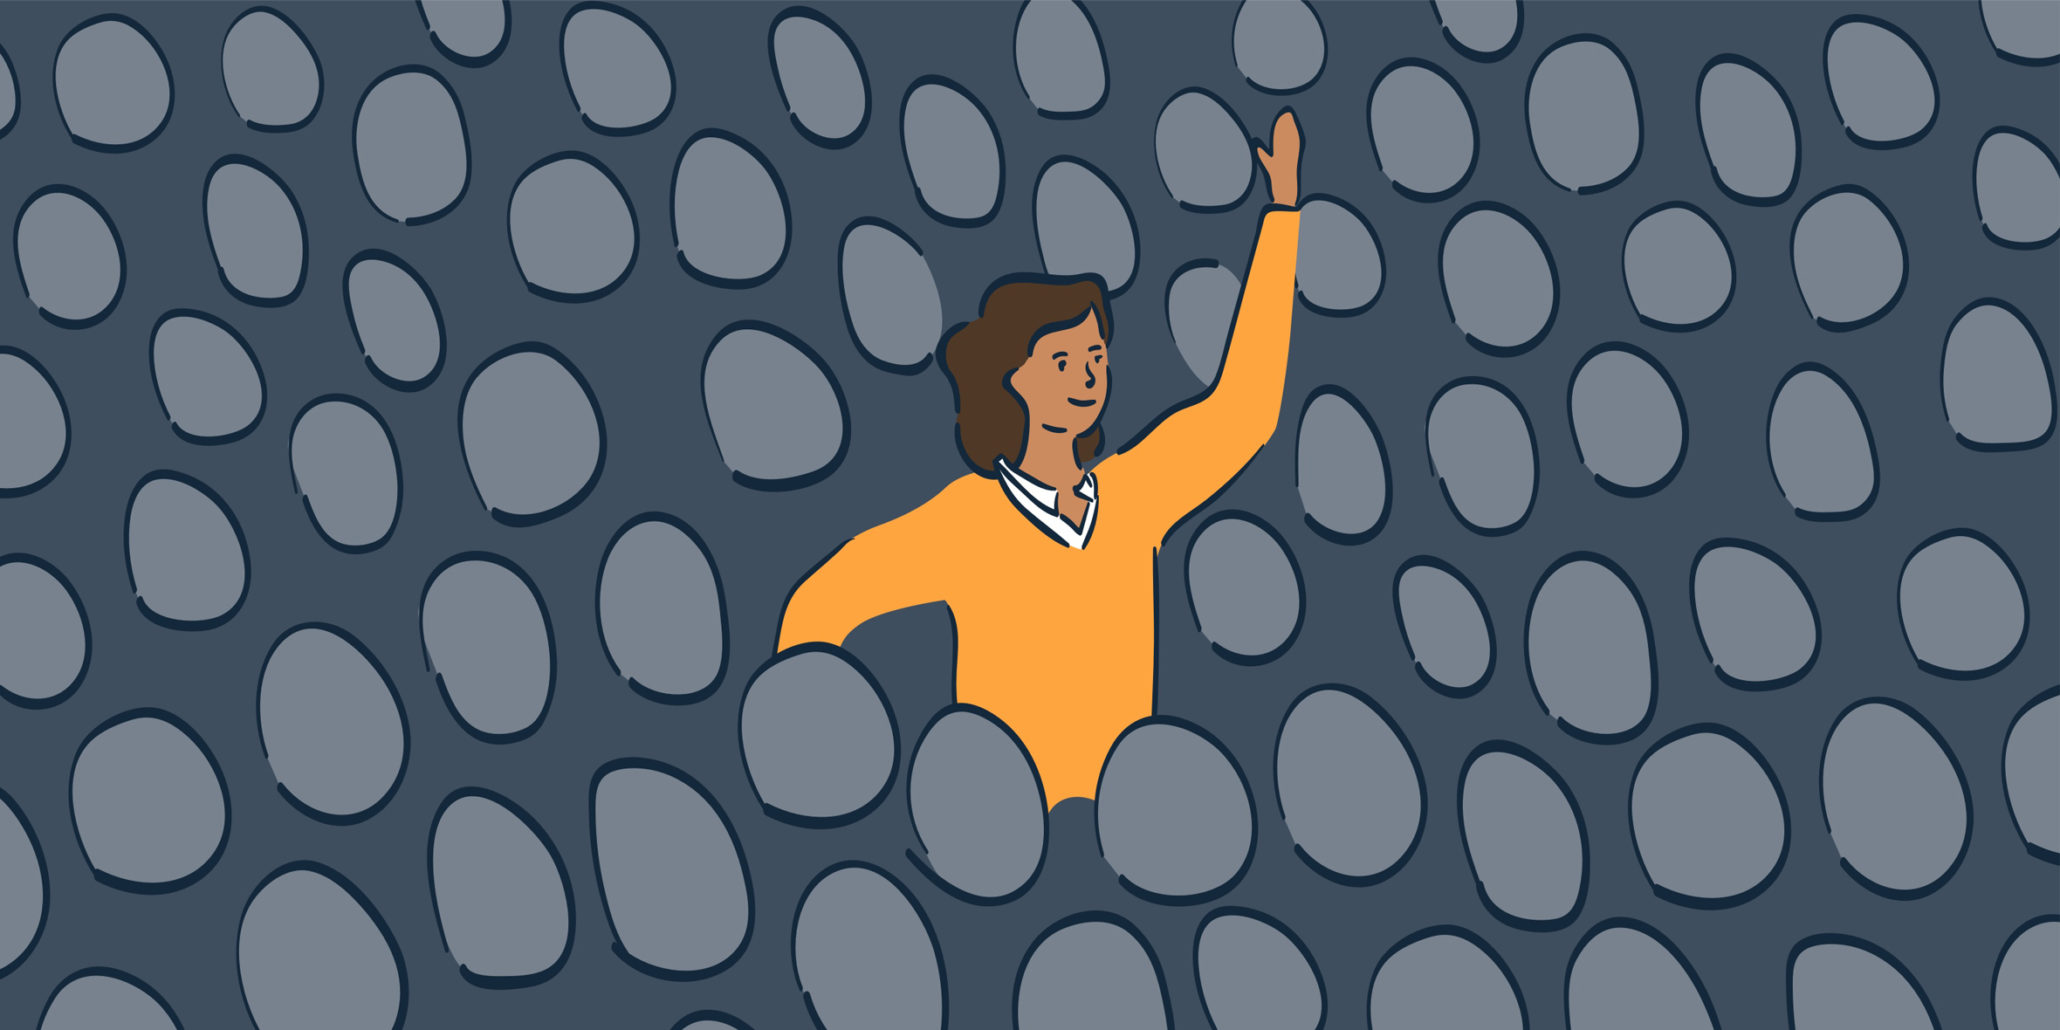 illustration of woman raising hand in crowded audience